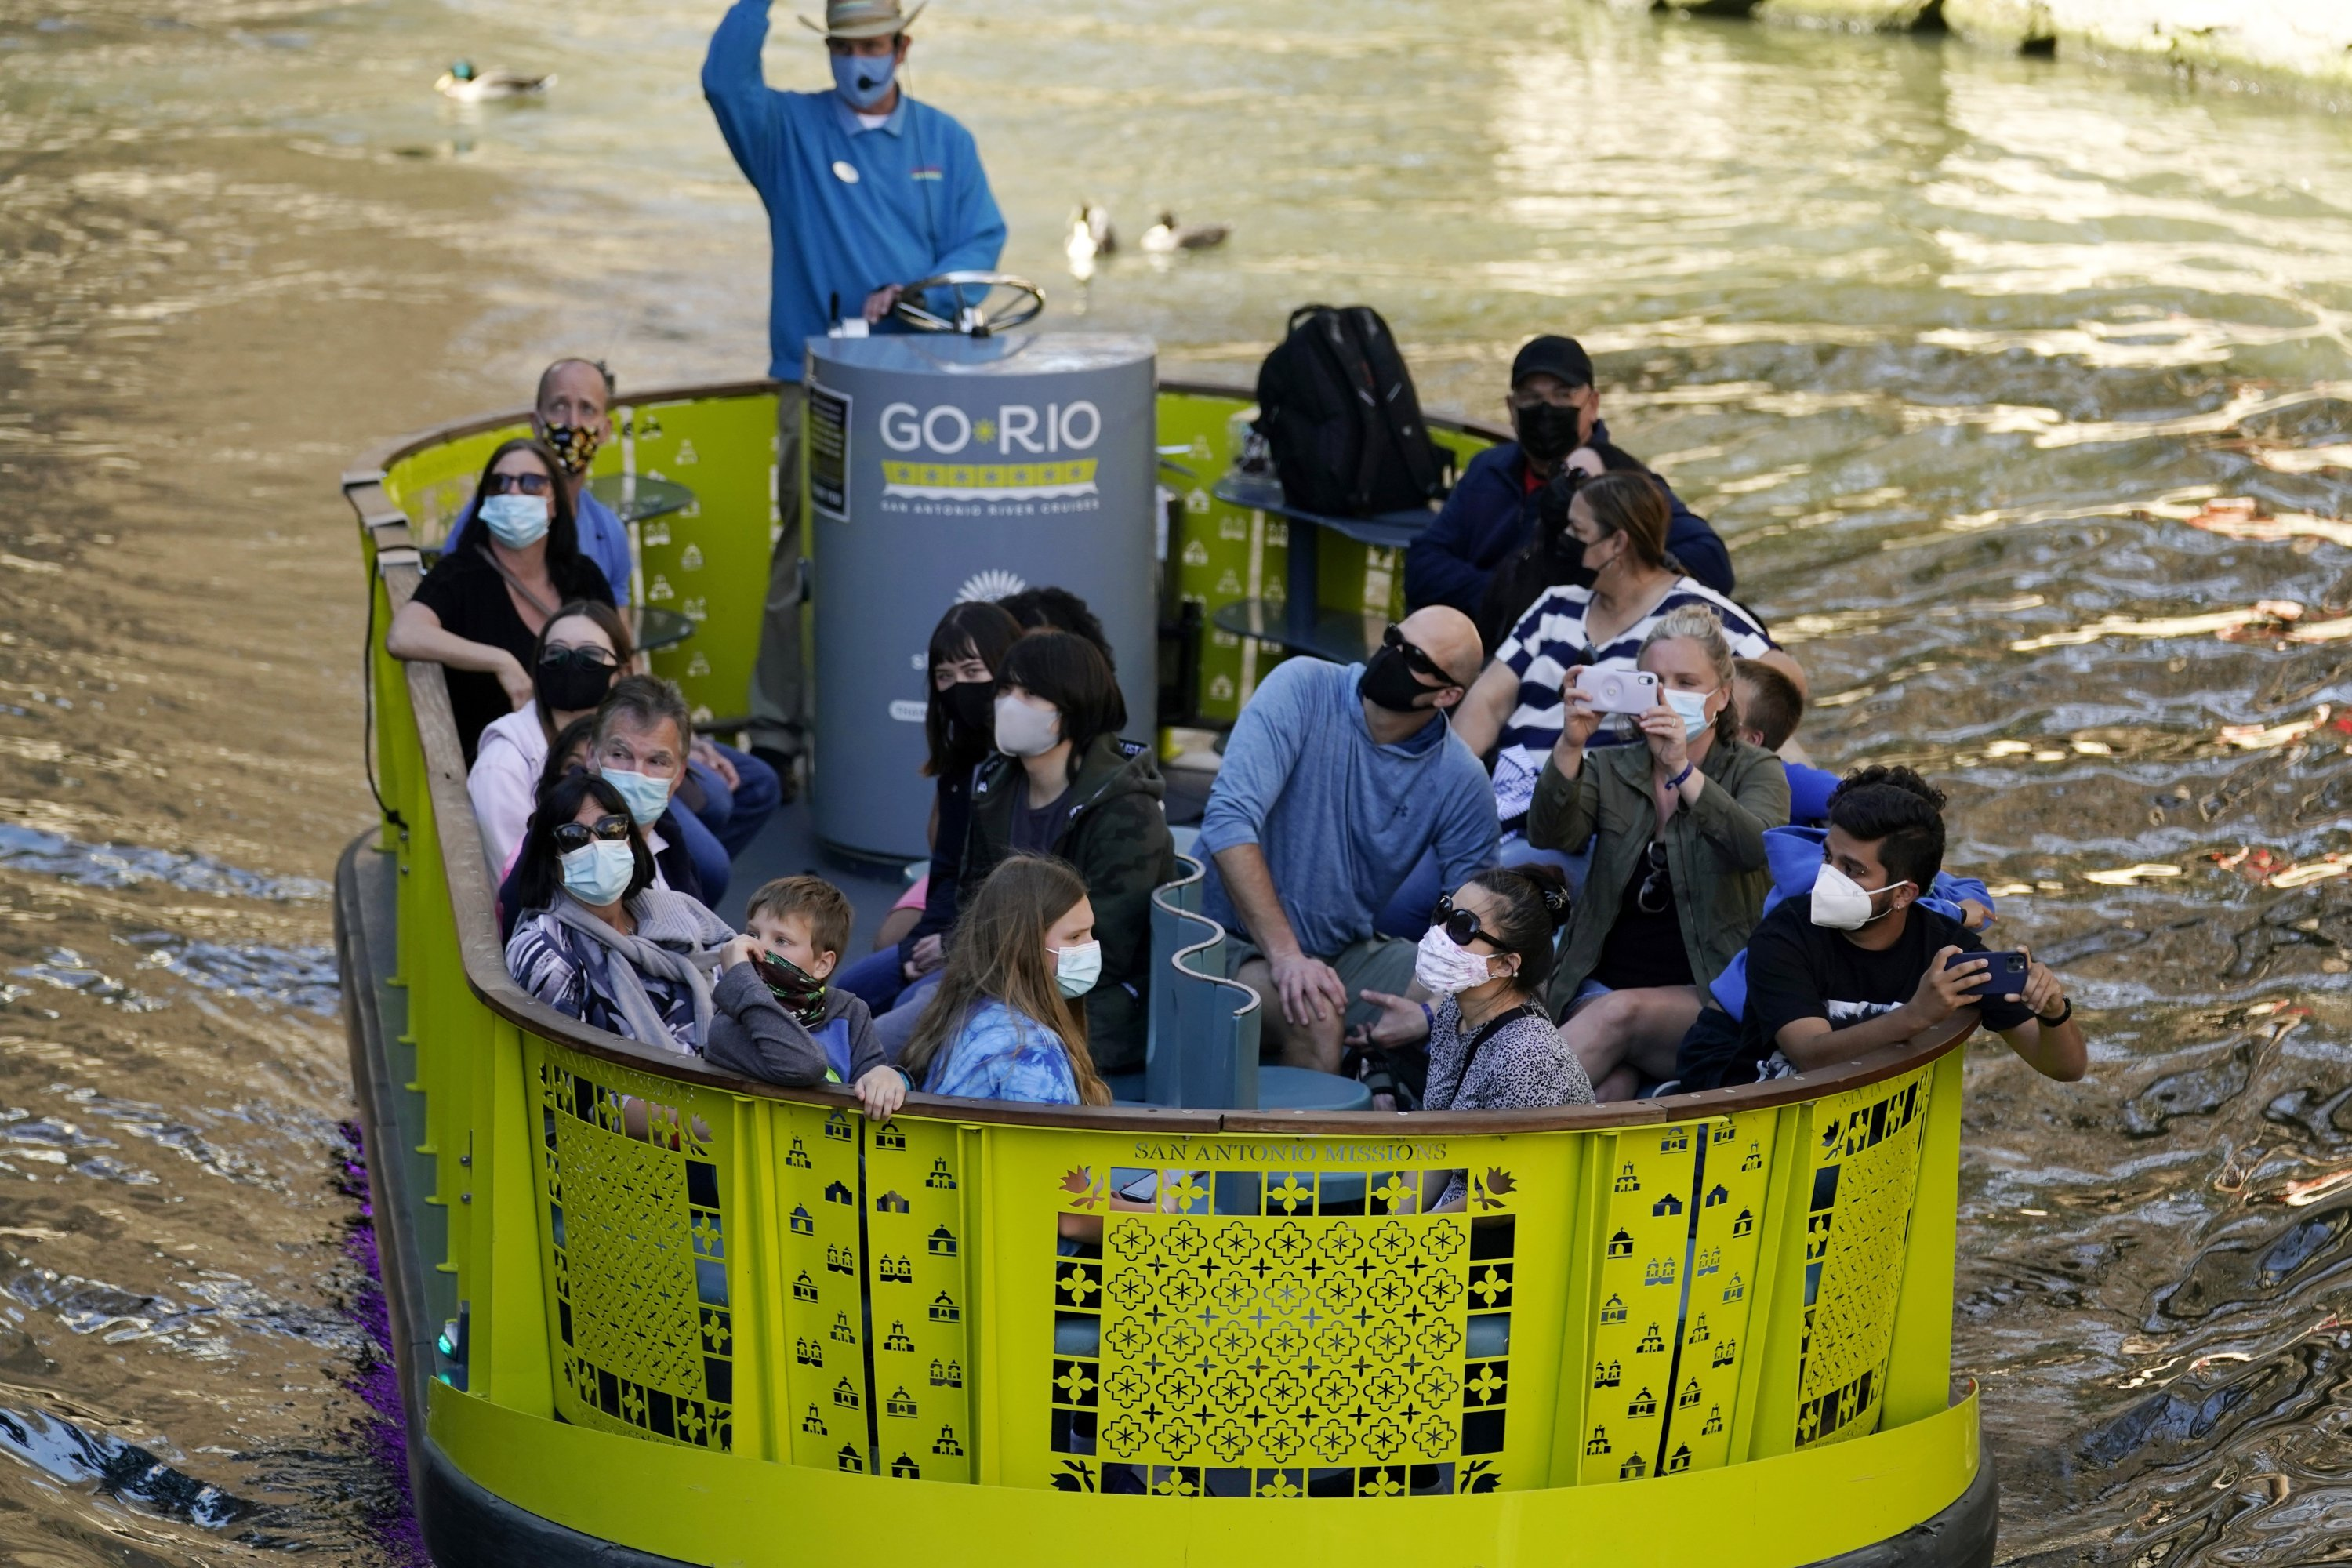 Visitors wear face masks during the coronavirus pandemic as they travel along the River Walk in San Antonio, Texas, March 3, 2021. (AP Photo/Eric Gay)